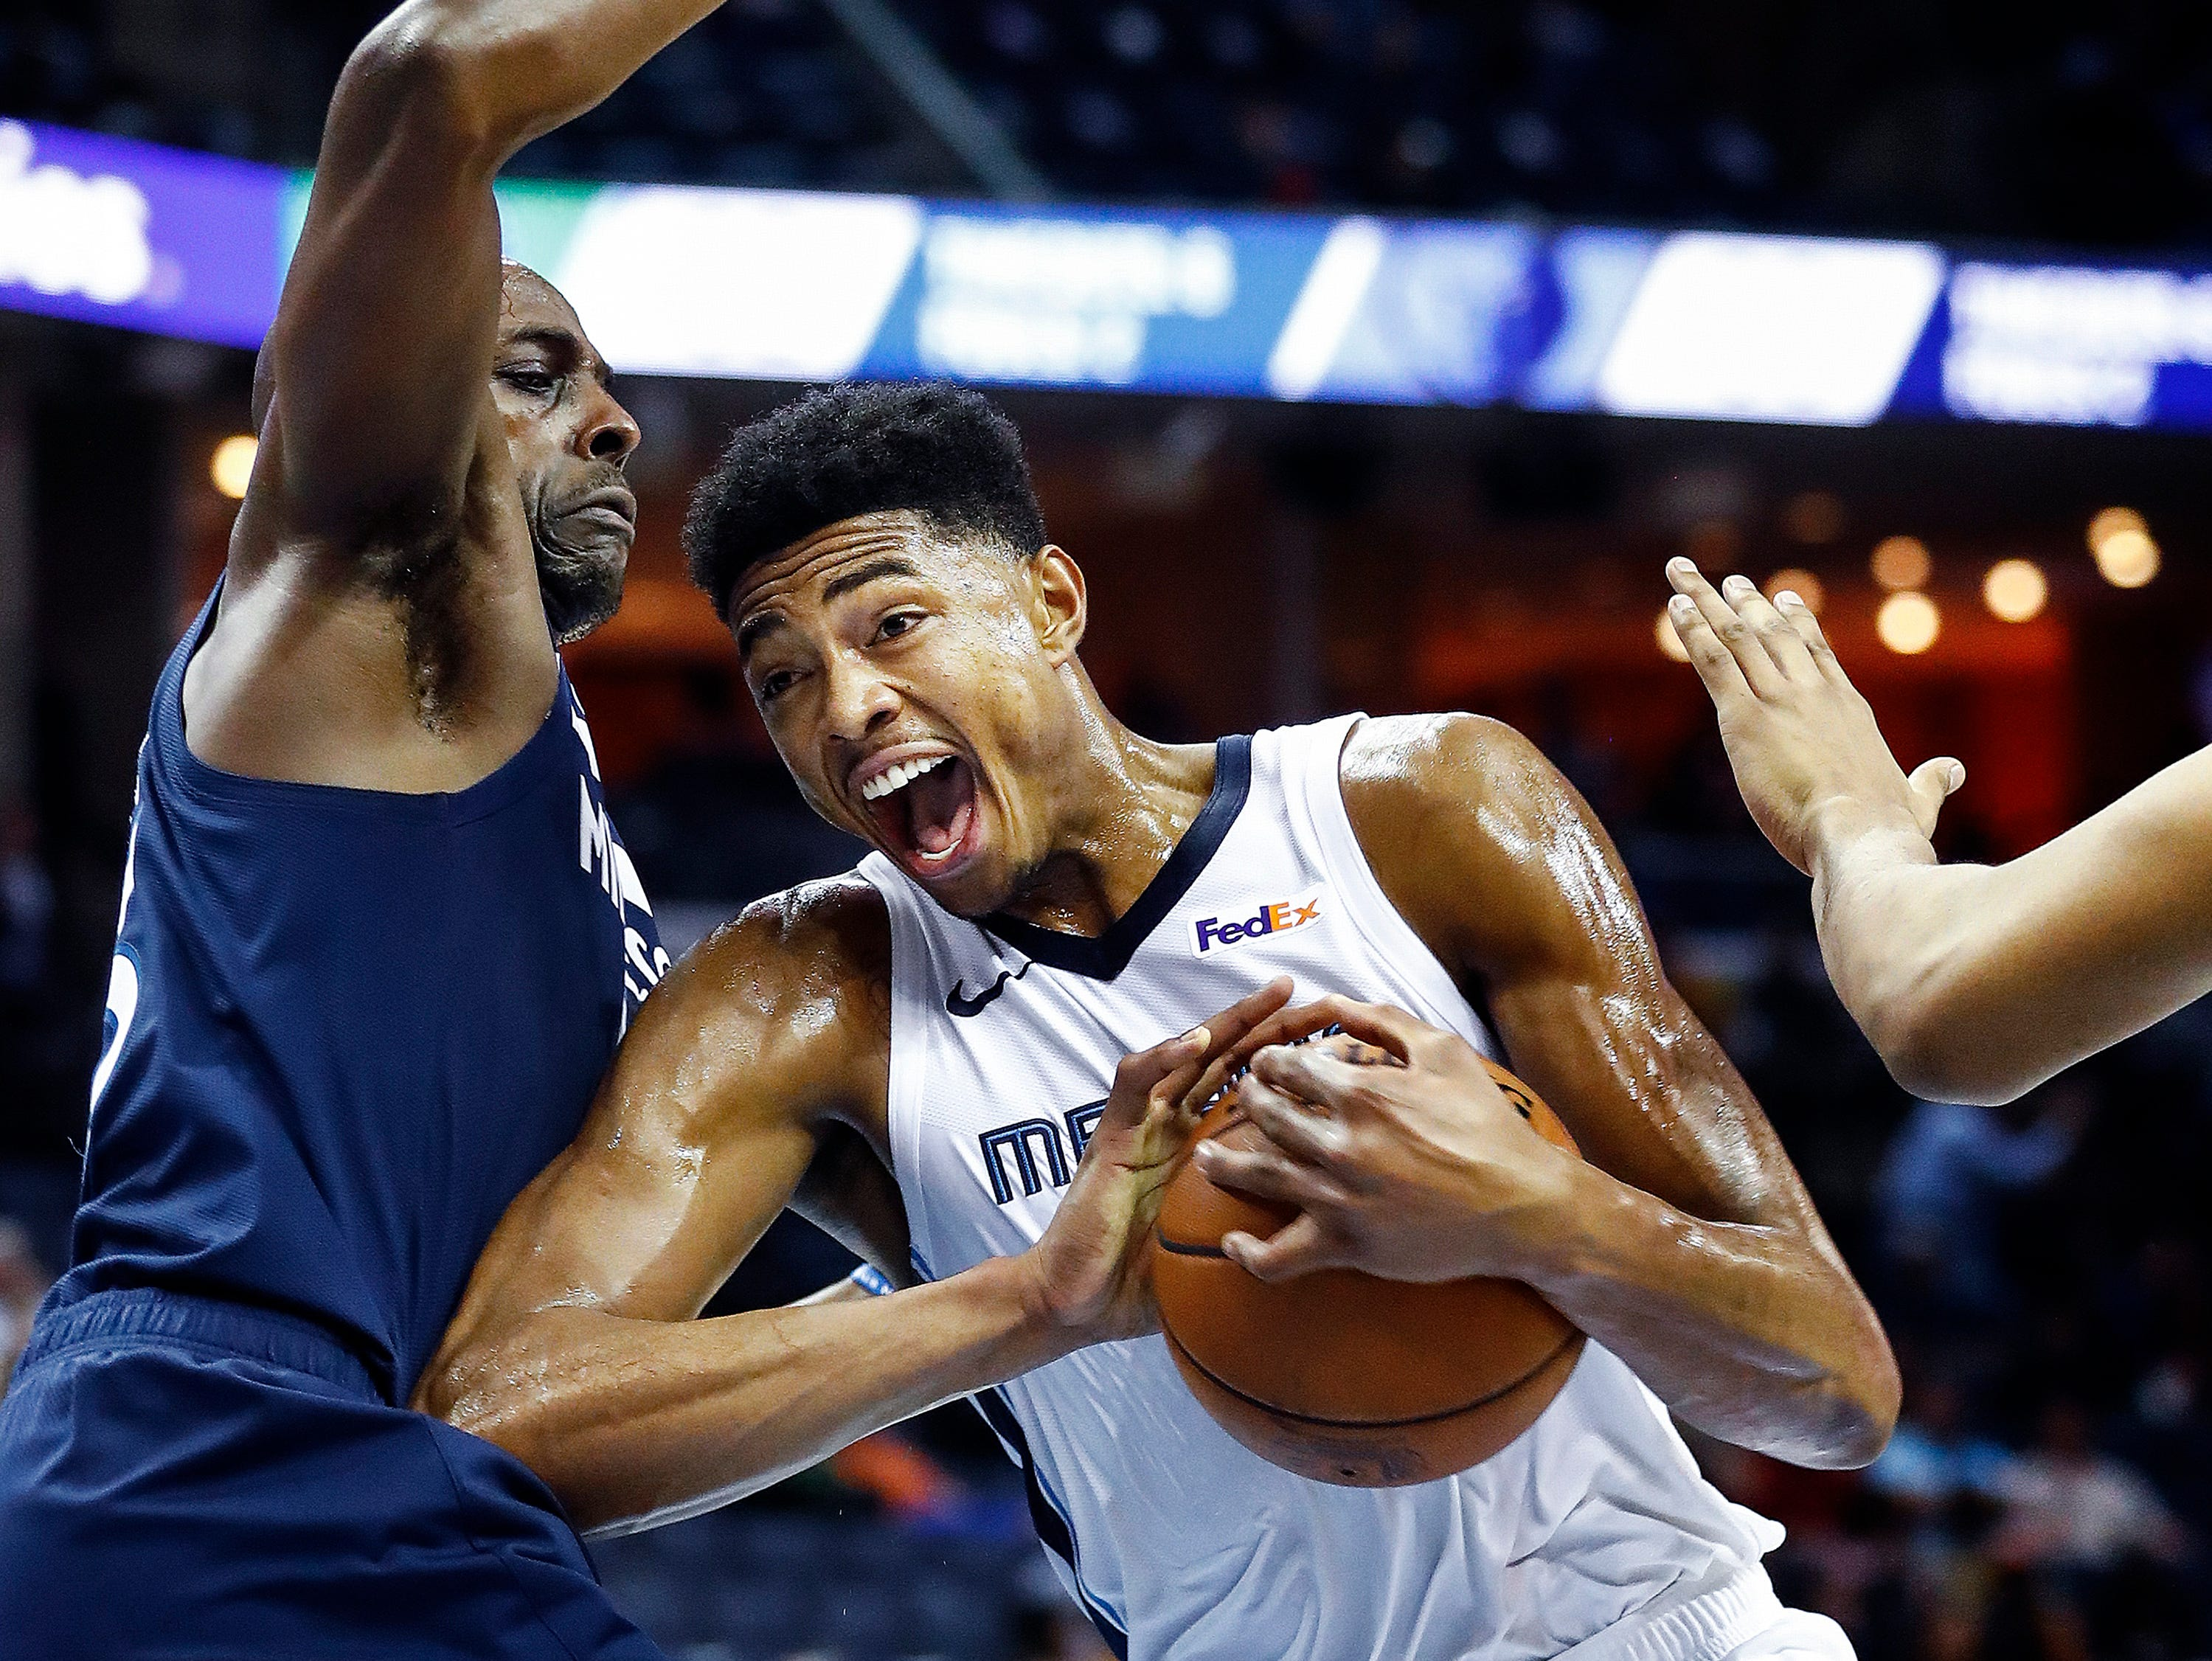 Memphis Grizzlies forward Bruno Caboclo (right) the lane against the Minnesota Timberwolves defense during first quarter action at the FedExForum in Memphis, Tenn., Tuesday, February 5, 2019.